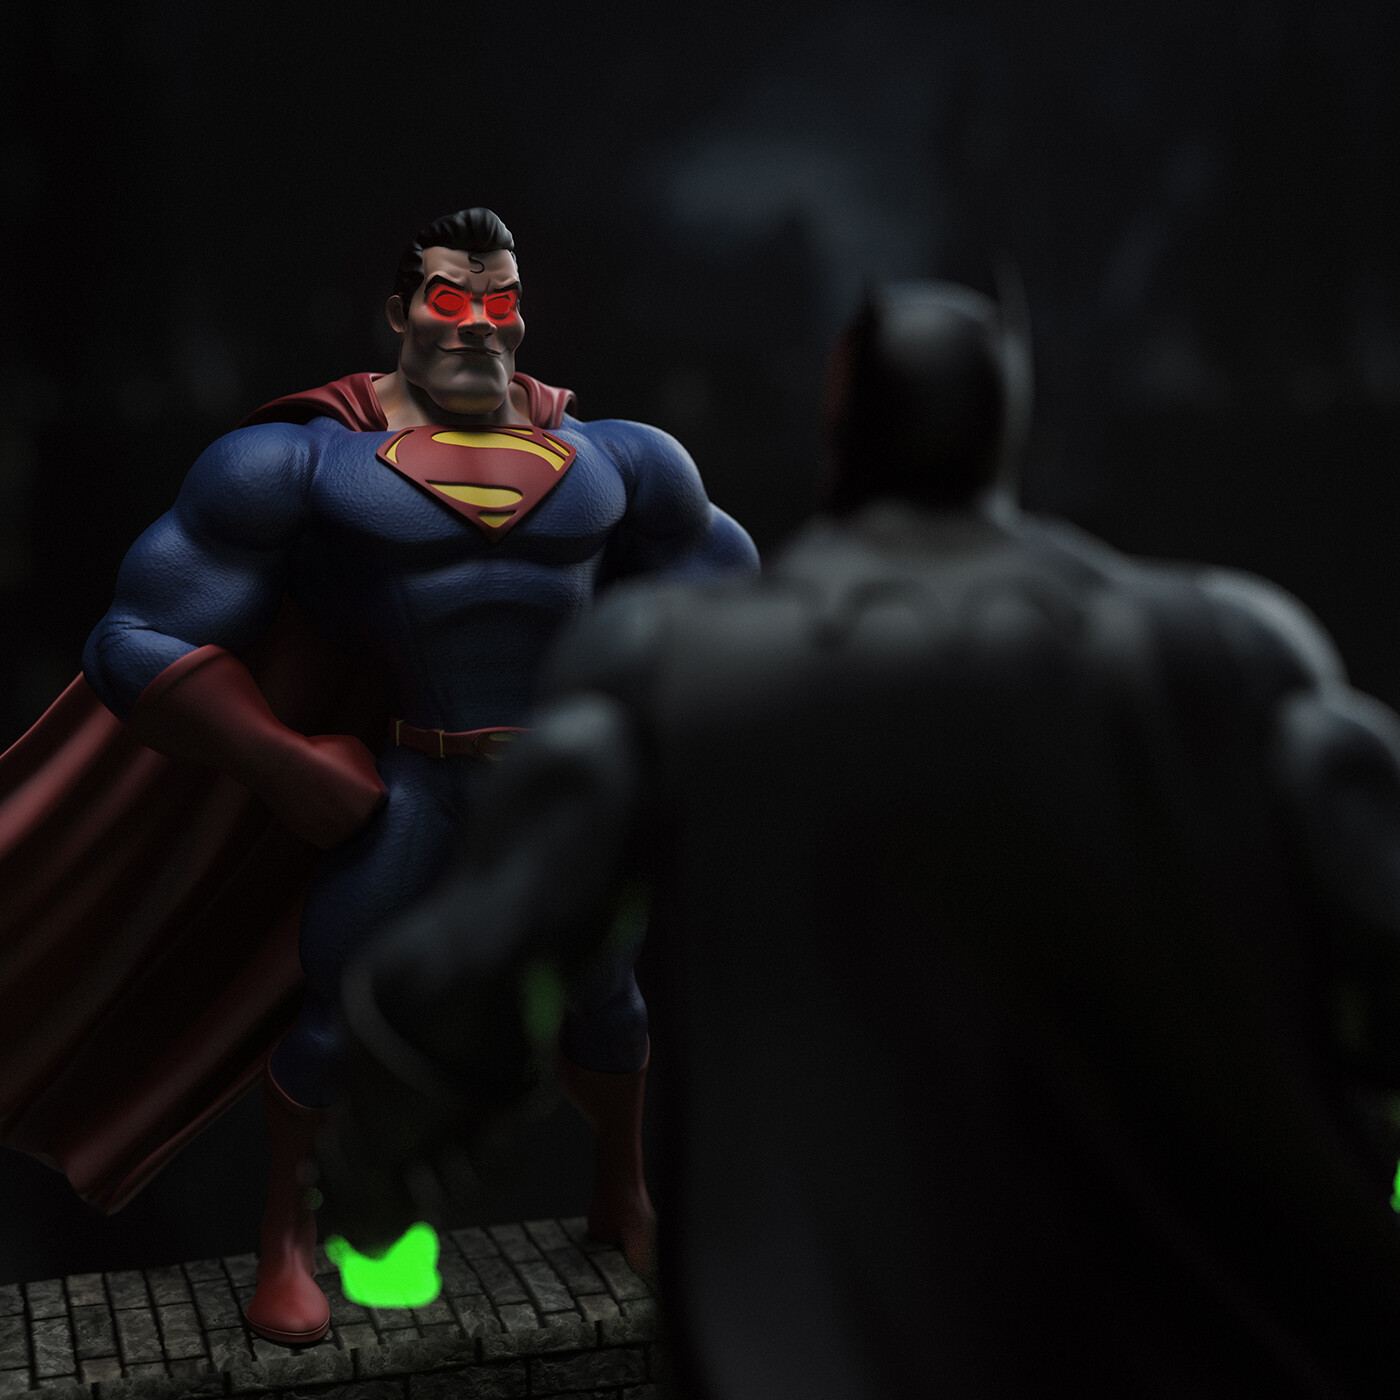 Superman: Next time they shine your light in the sky, don't go to it. The Bat is dead, bury it. Consider this mercy.